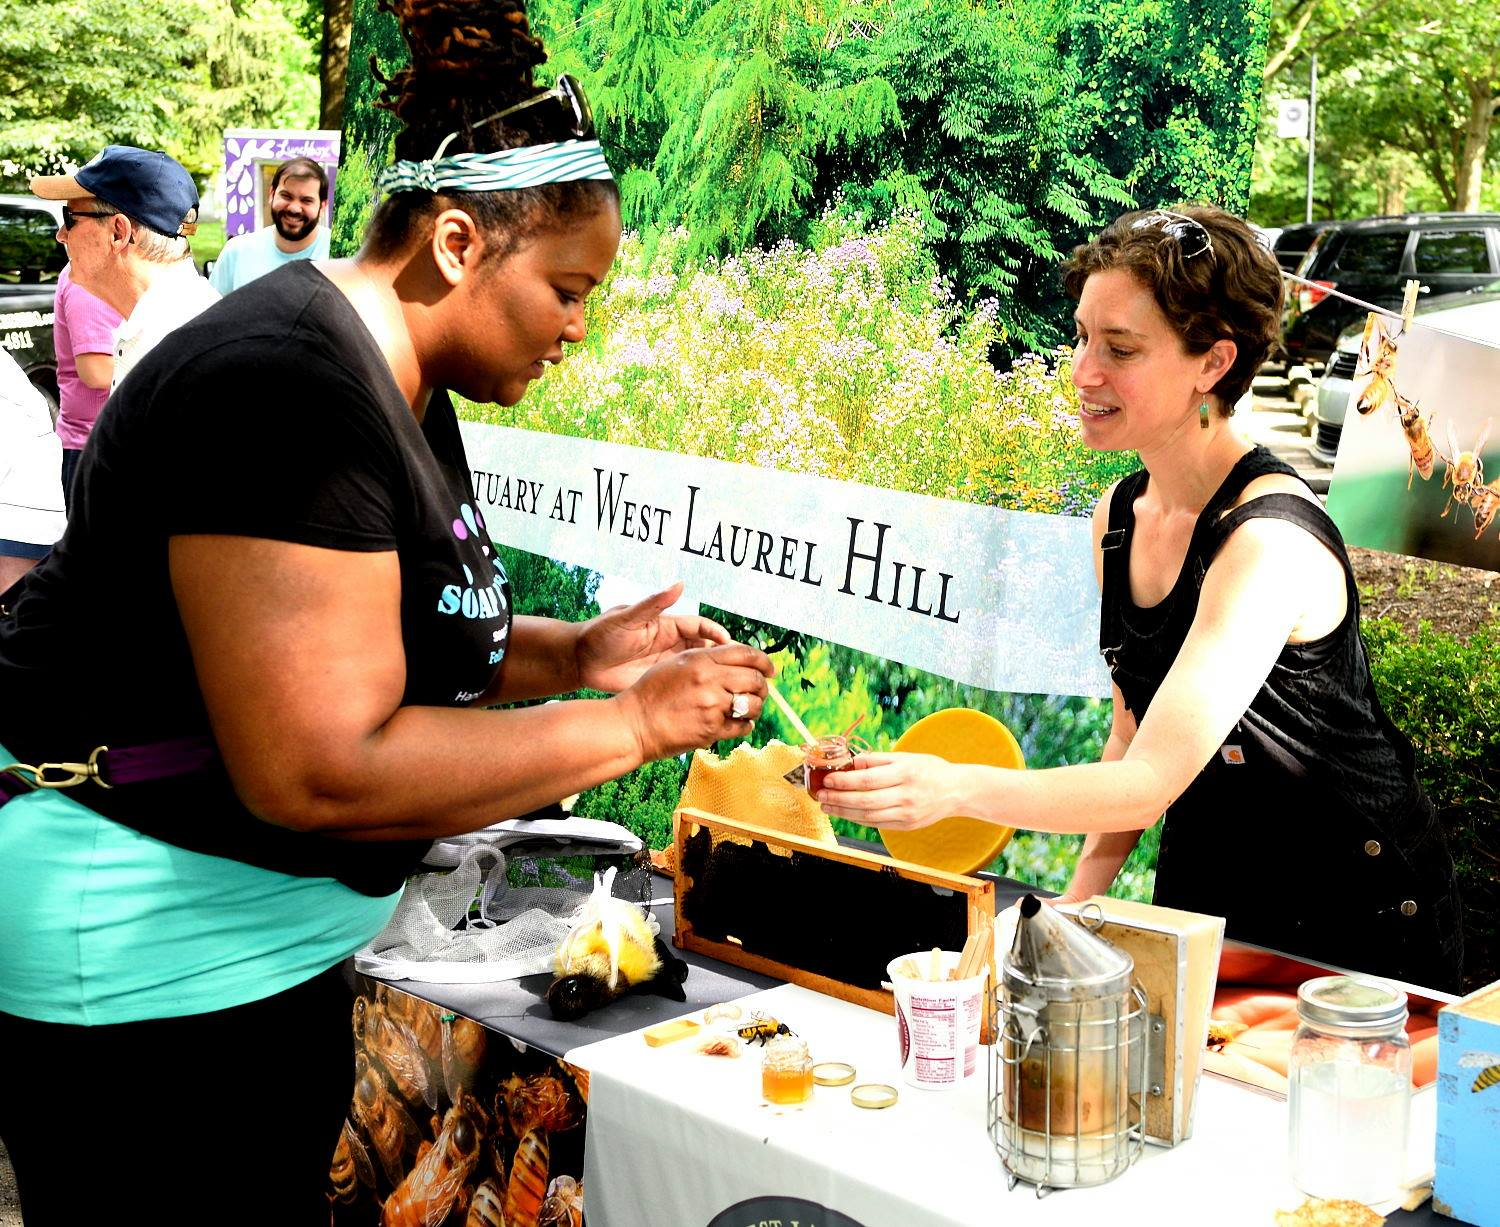 Fifth annual West Laurel Hill Cemetery Sustainability Fair to benefit Lower Merion Conservancy